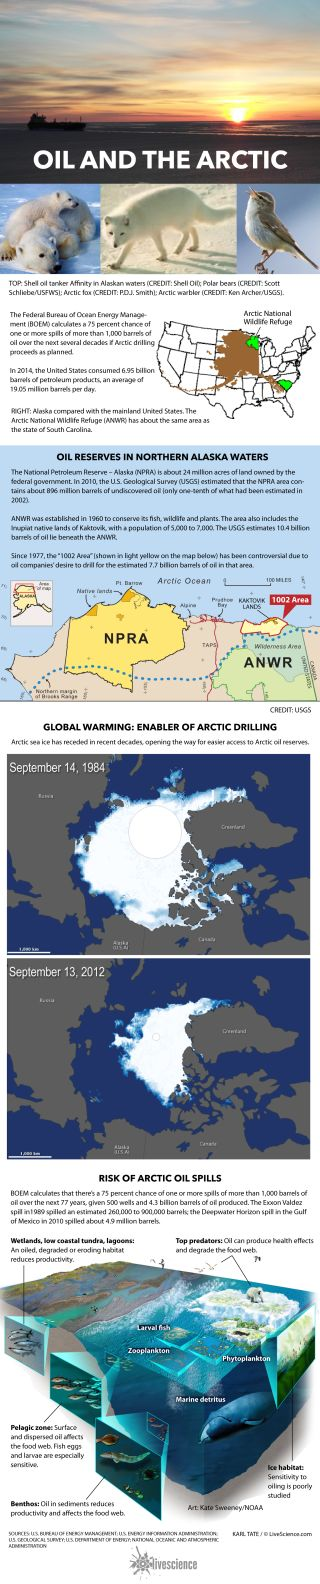 Details about oil-drilling areas in Alaska.